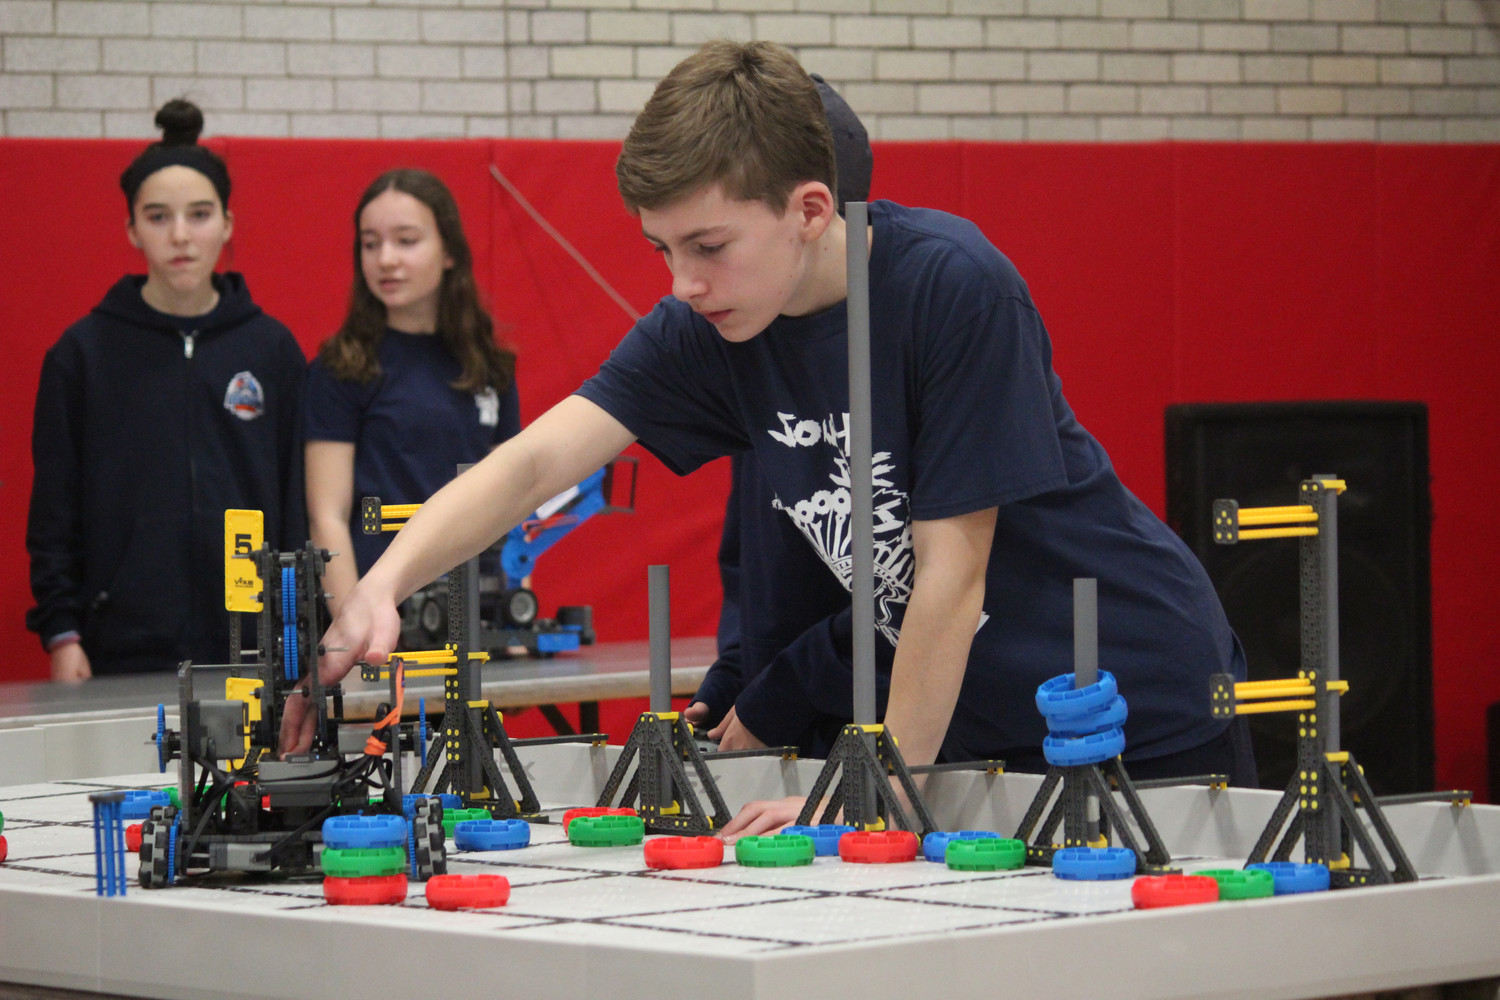 South Side Middle School eighth-grader Ben Lomot participated in one of the qualifying rounds.